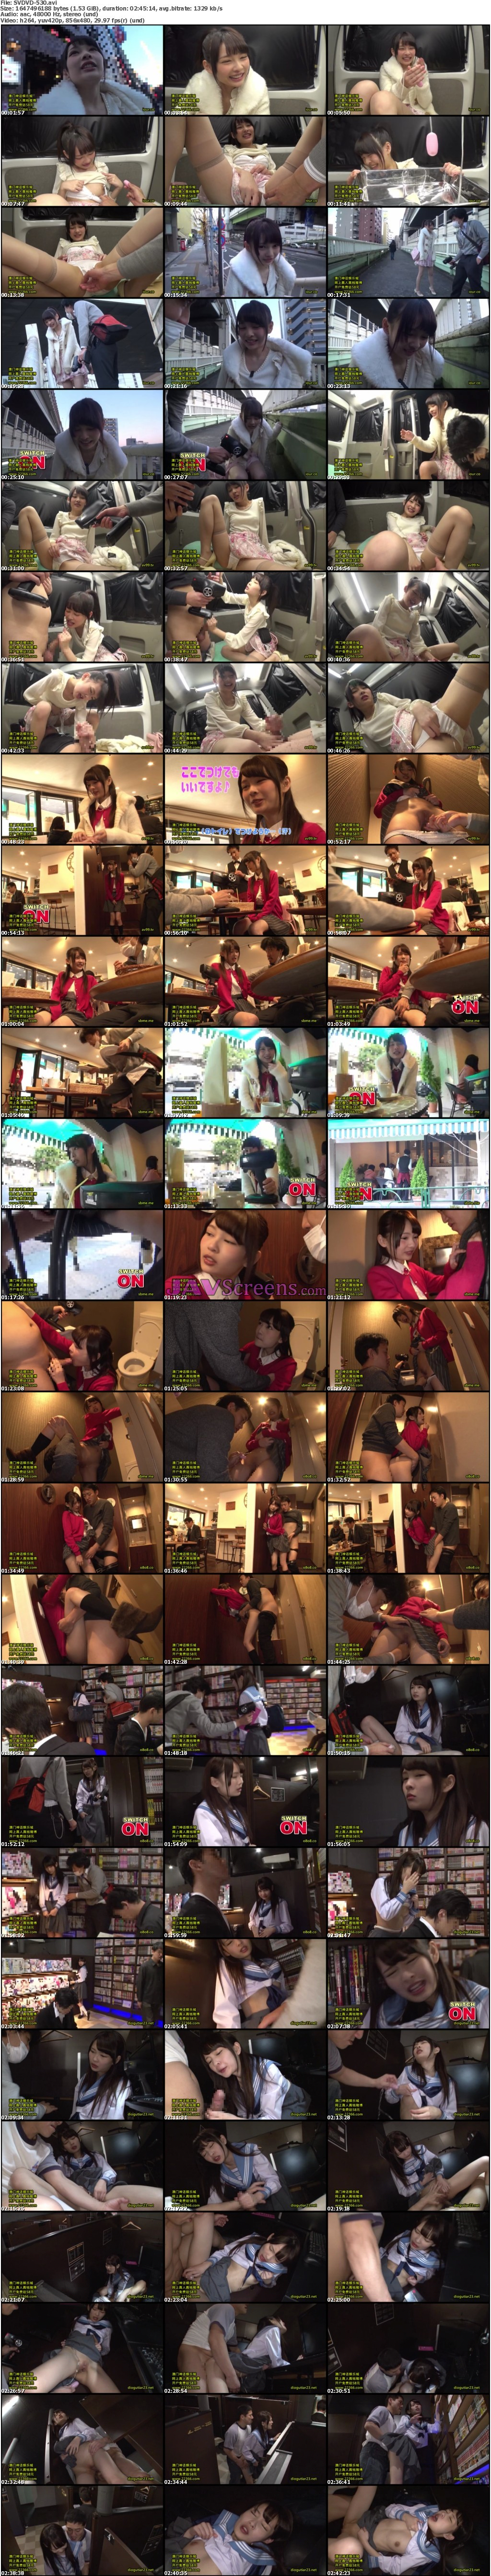 SVDVD-530.jpg - JAV Screenshot